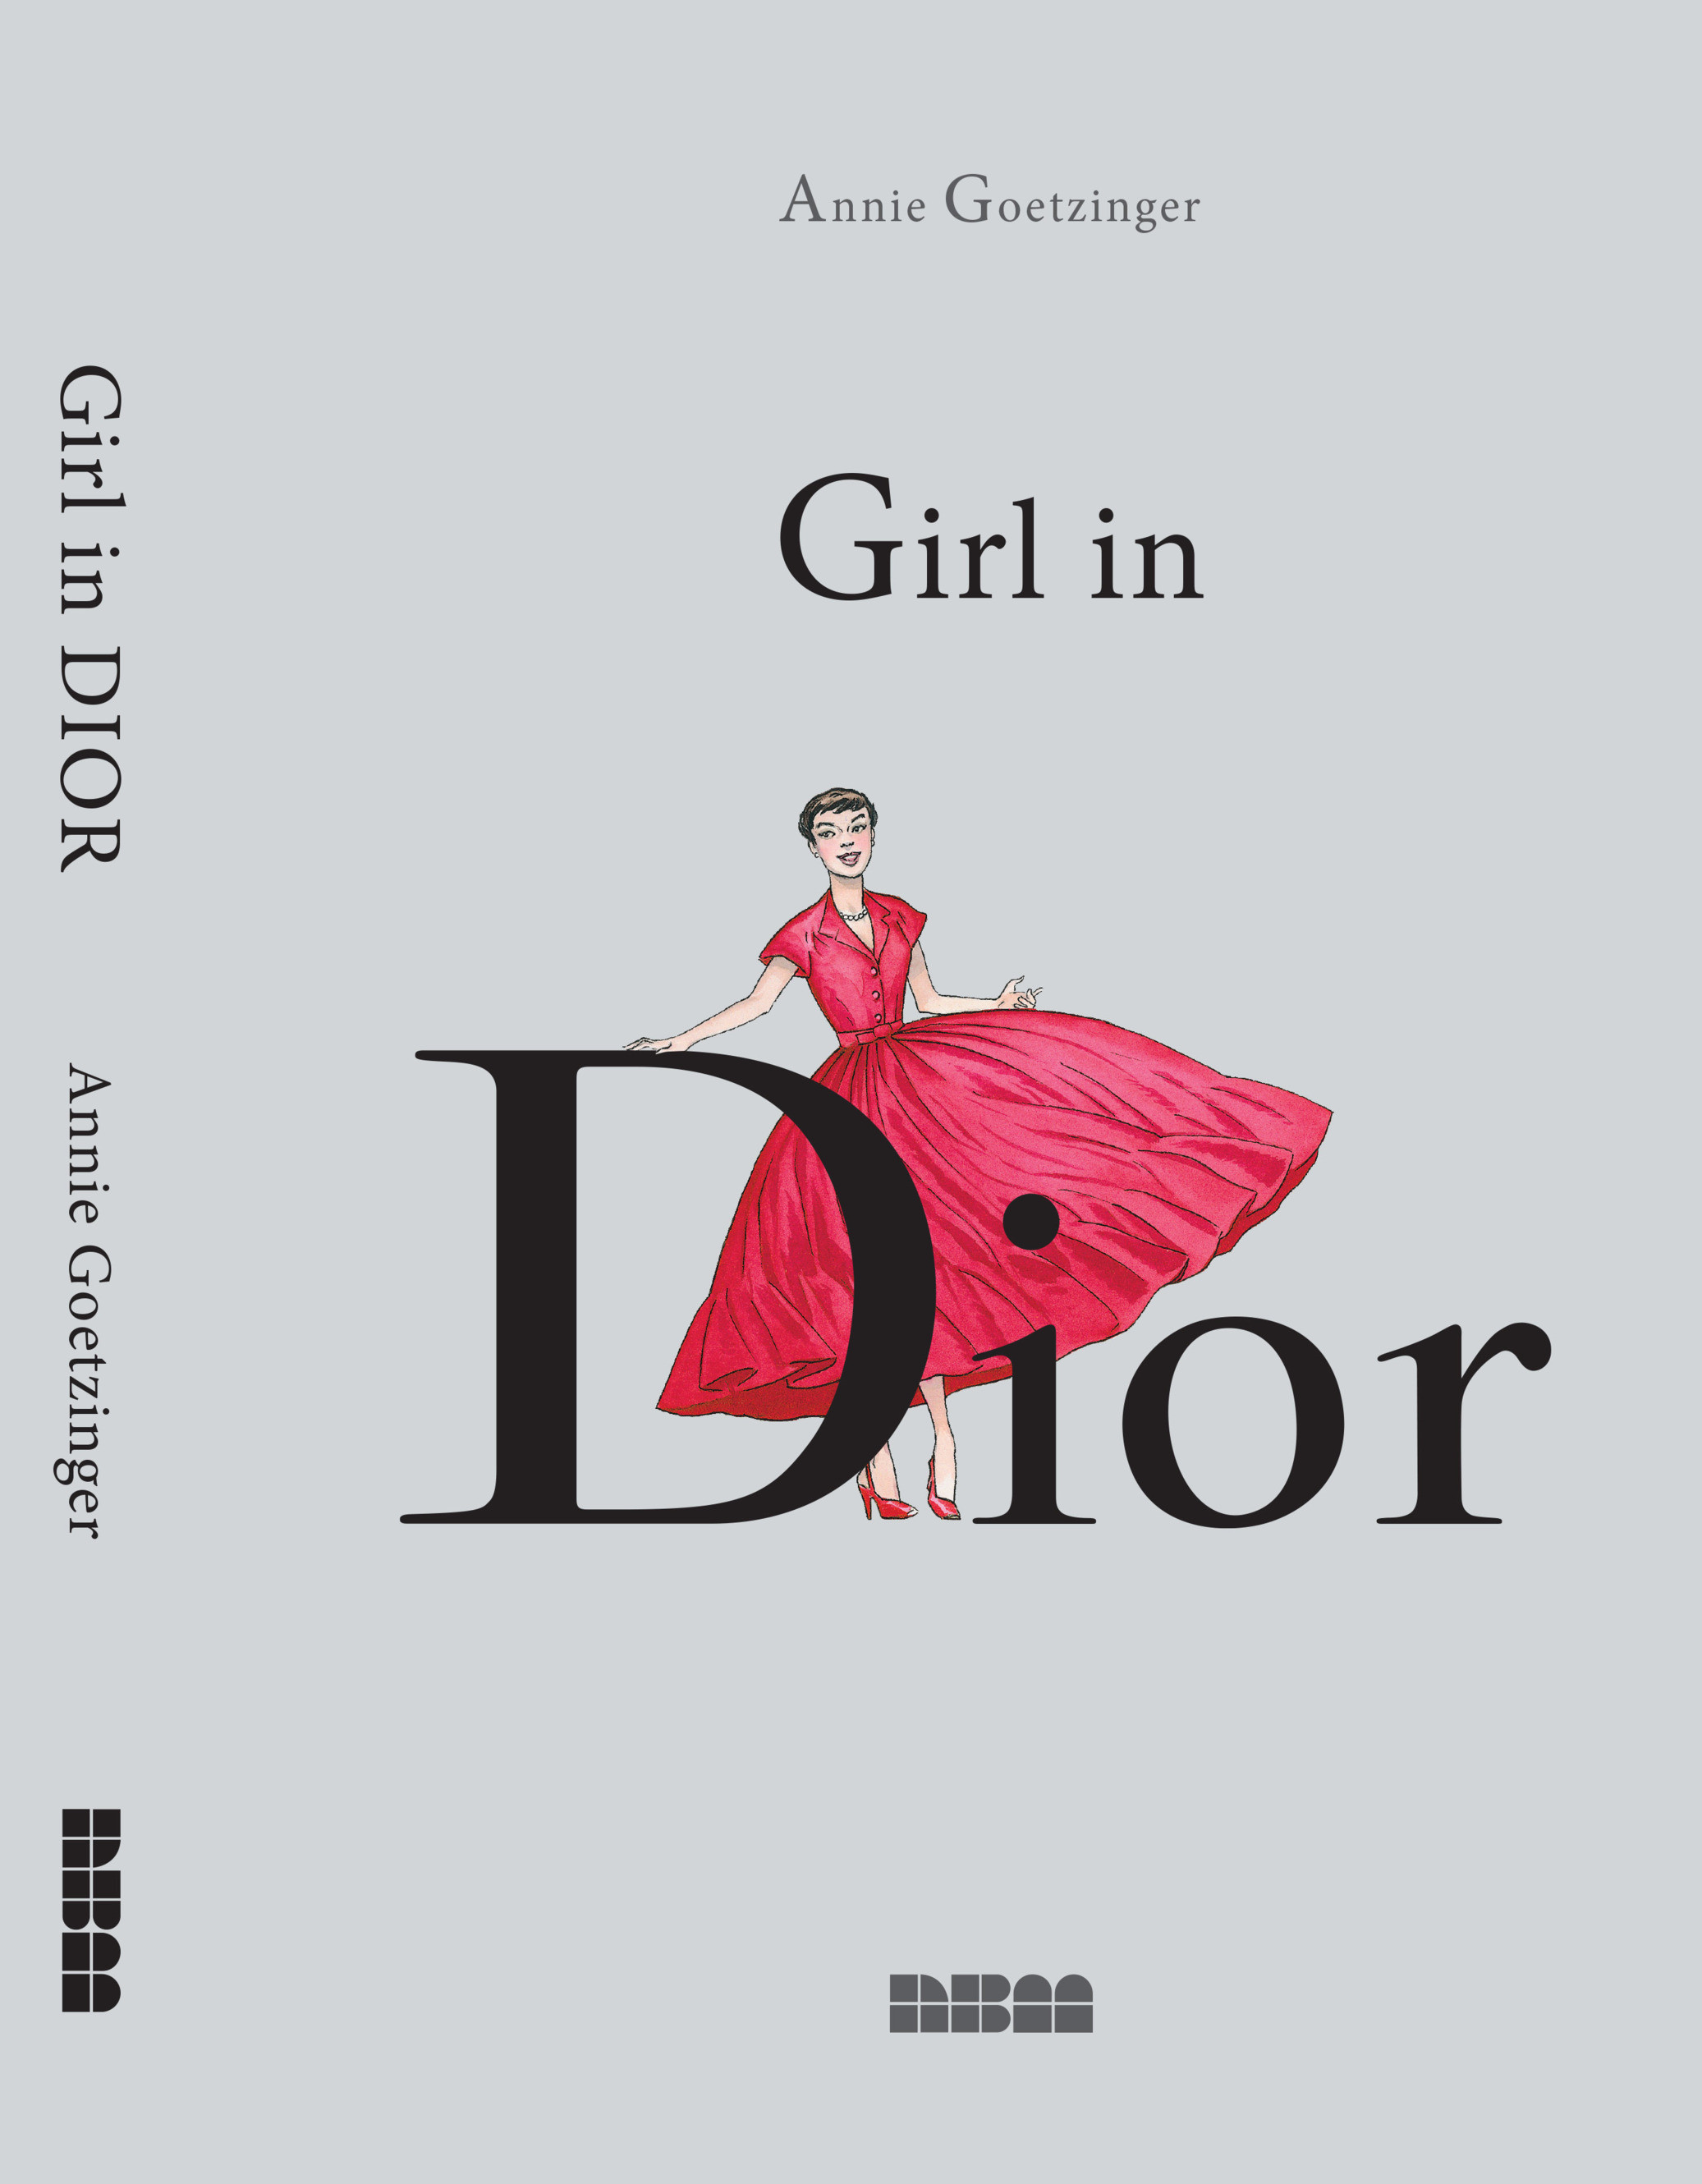 a girl in dior